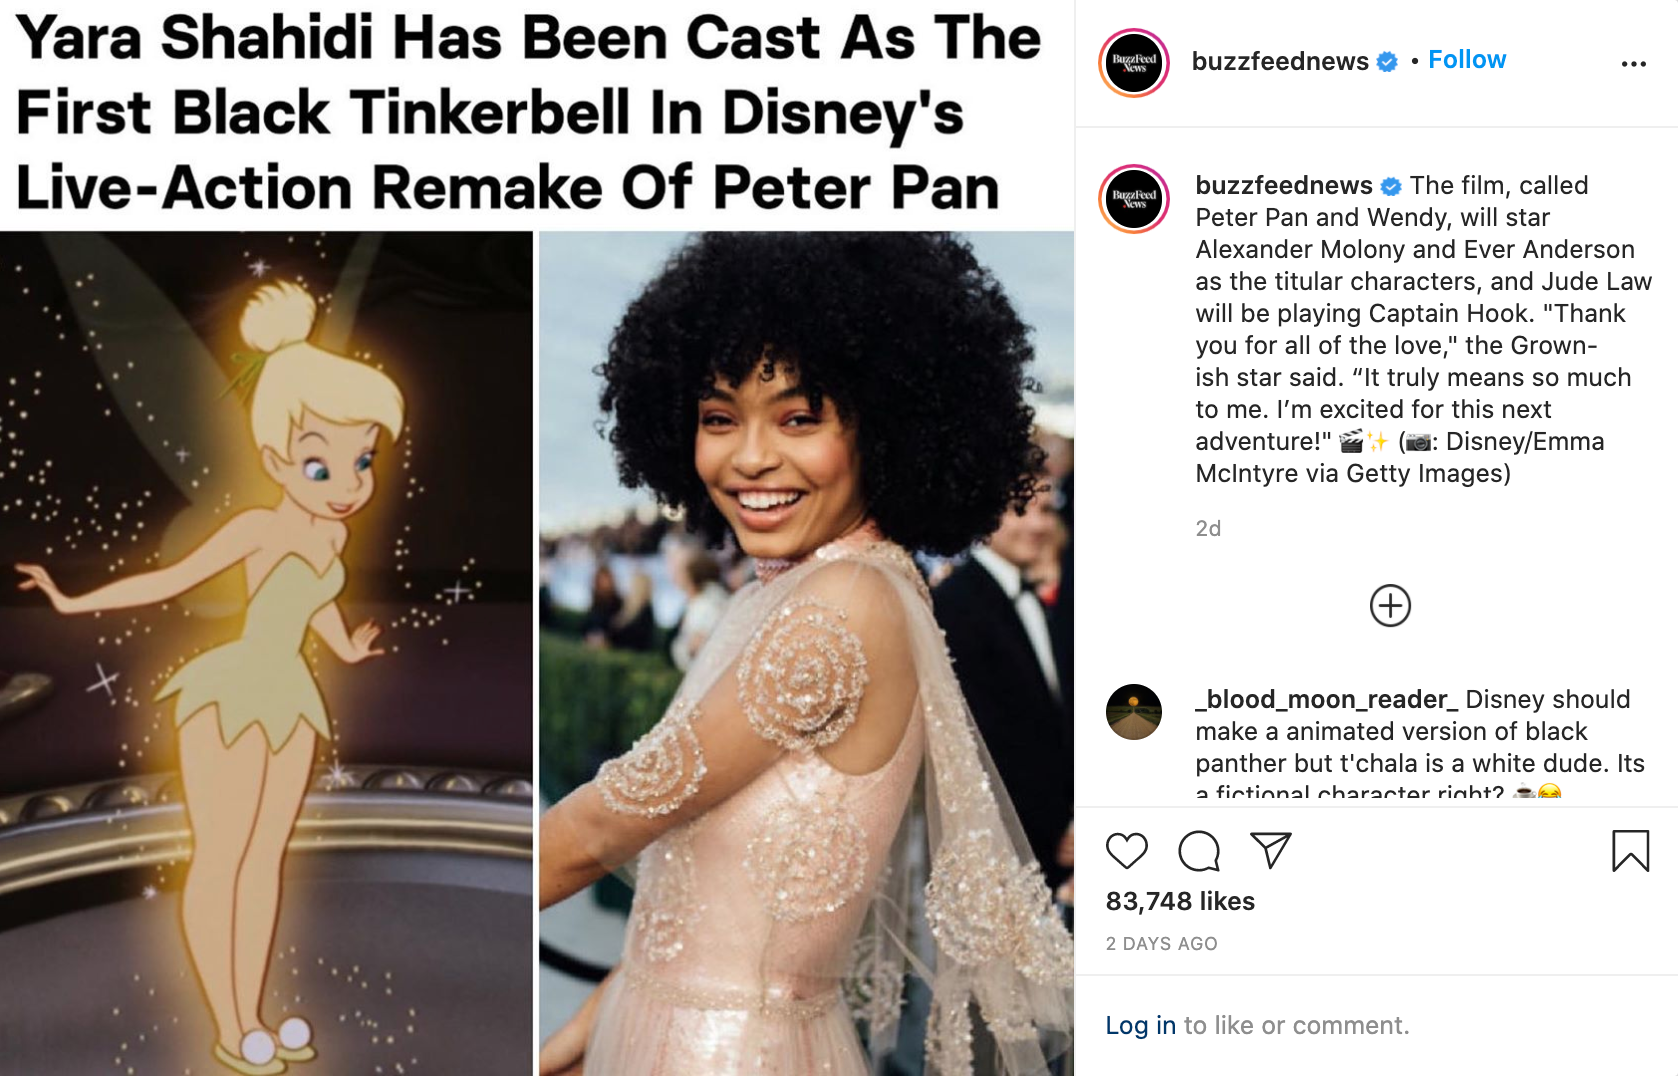 disney peter pan insta post 1